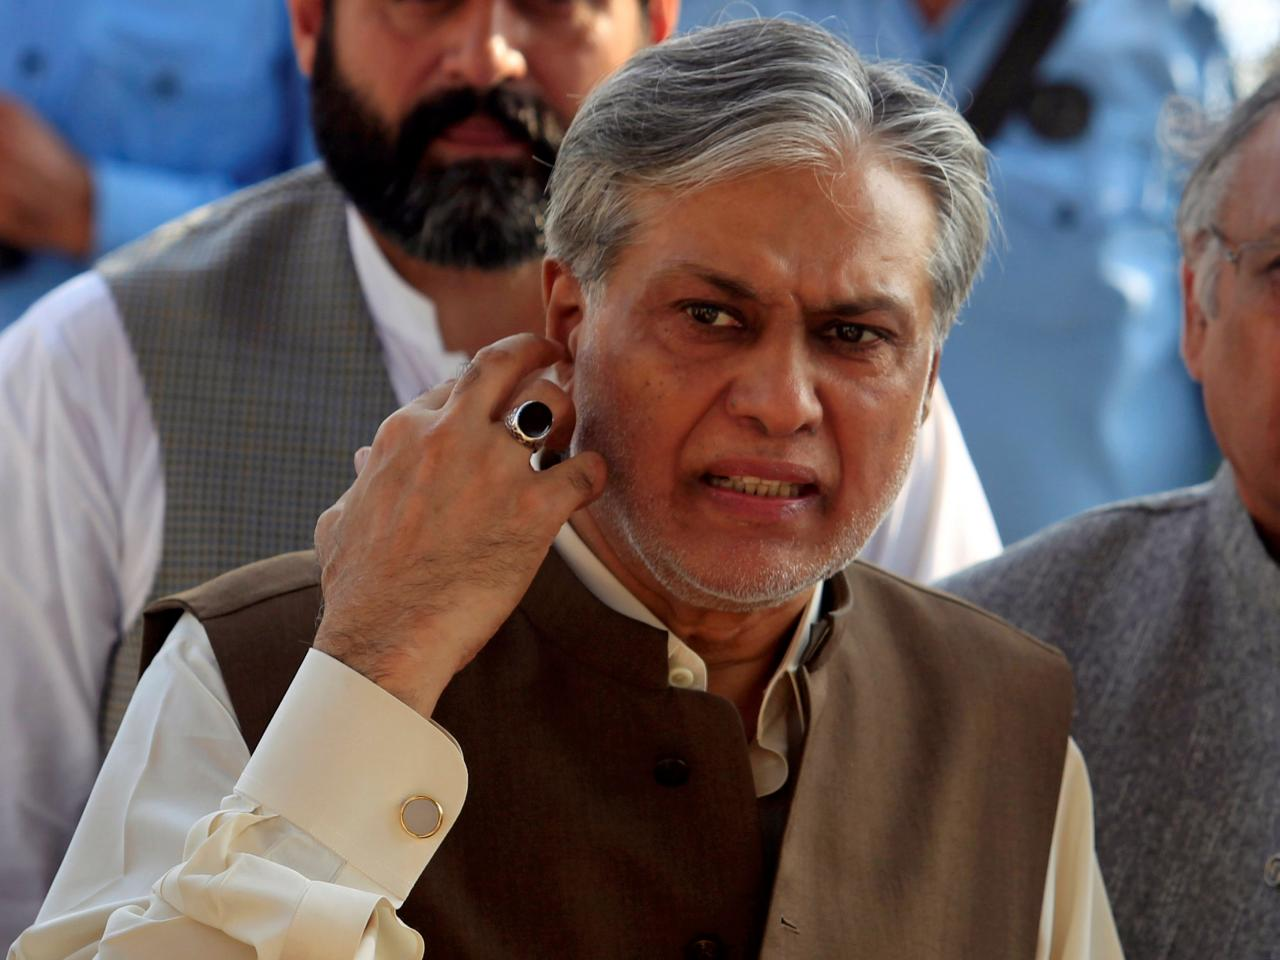 Pakistan court issues arrest warrant for finance minister